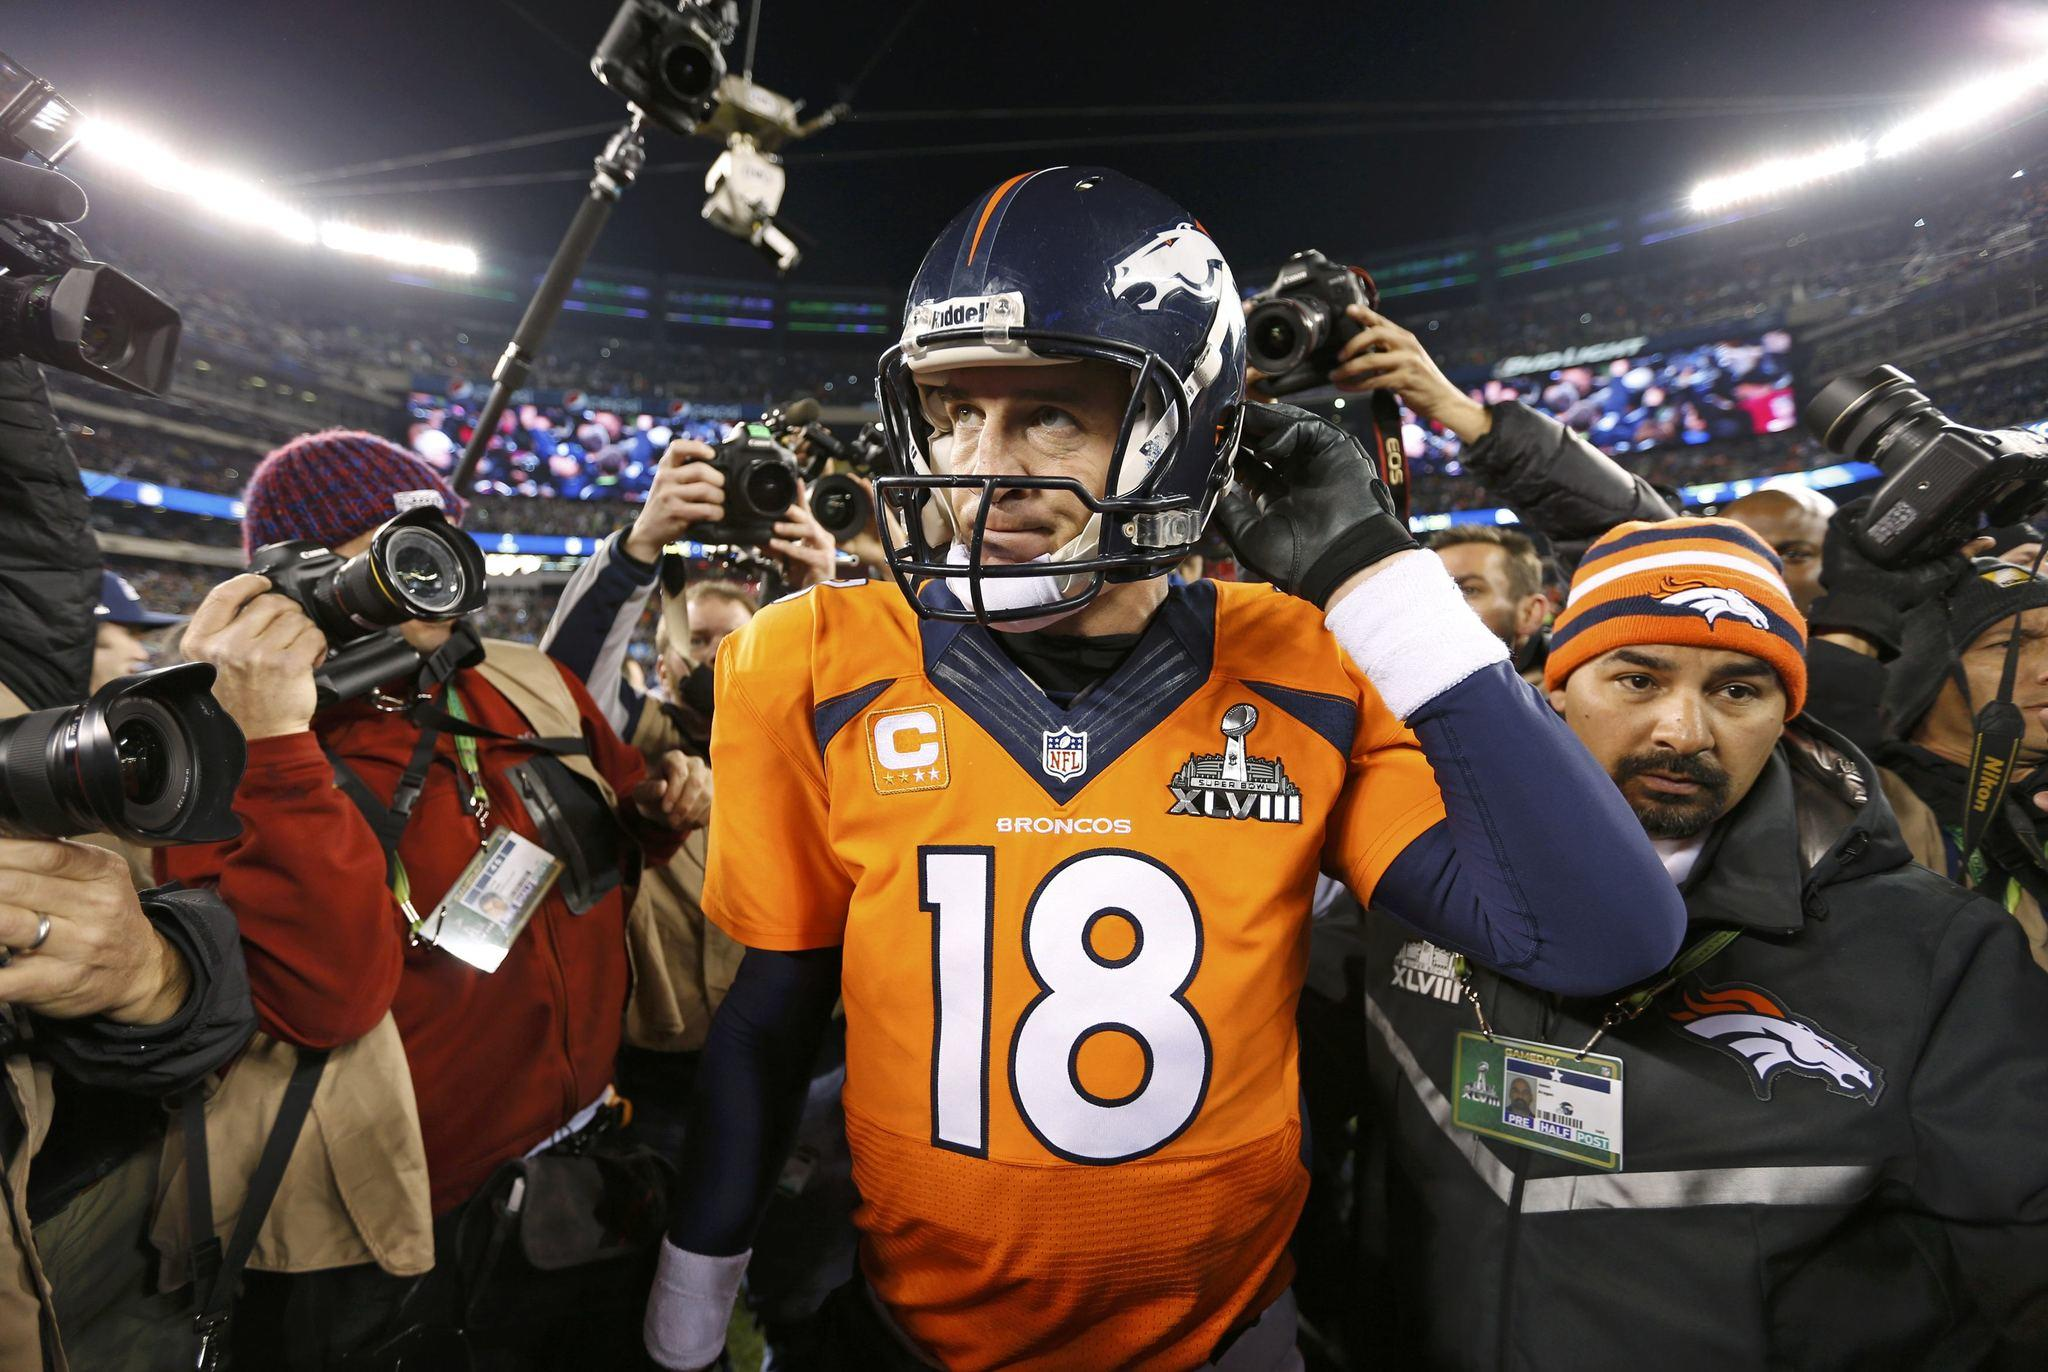 Broncos quarterback Peyton Manning leaves field after being defeated by the Seahawks in Super Bowl XLVIII.